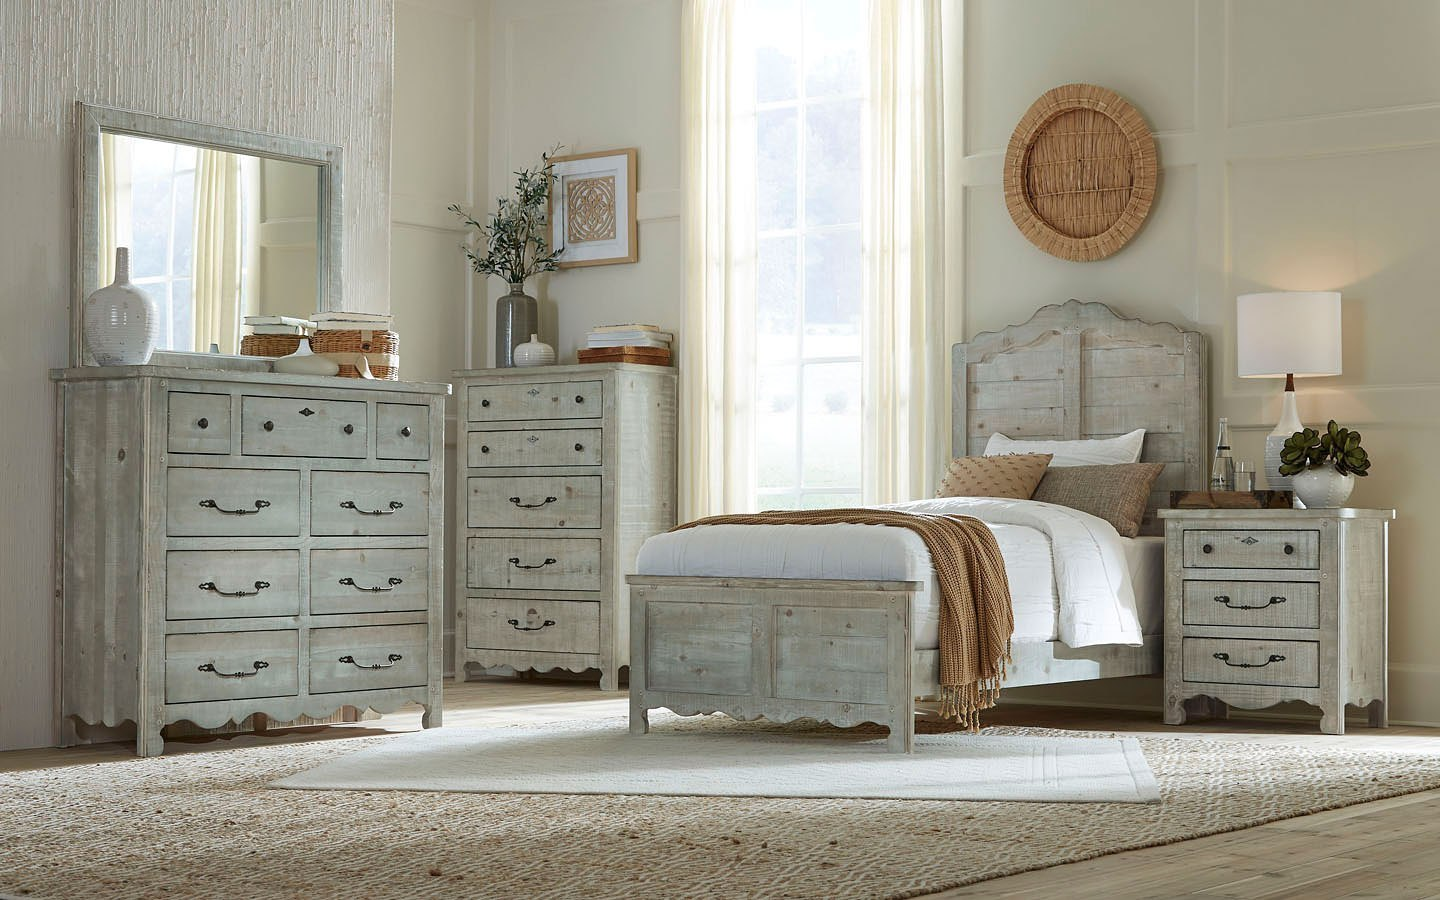 Chatsworth bedroom collection select items available / call for availability